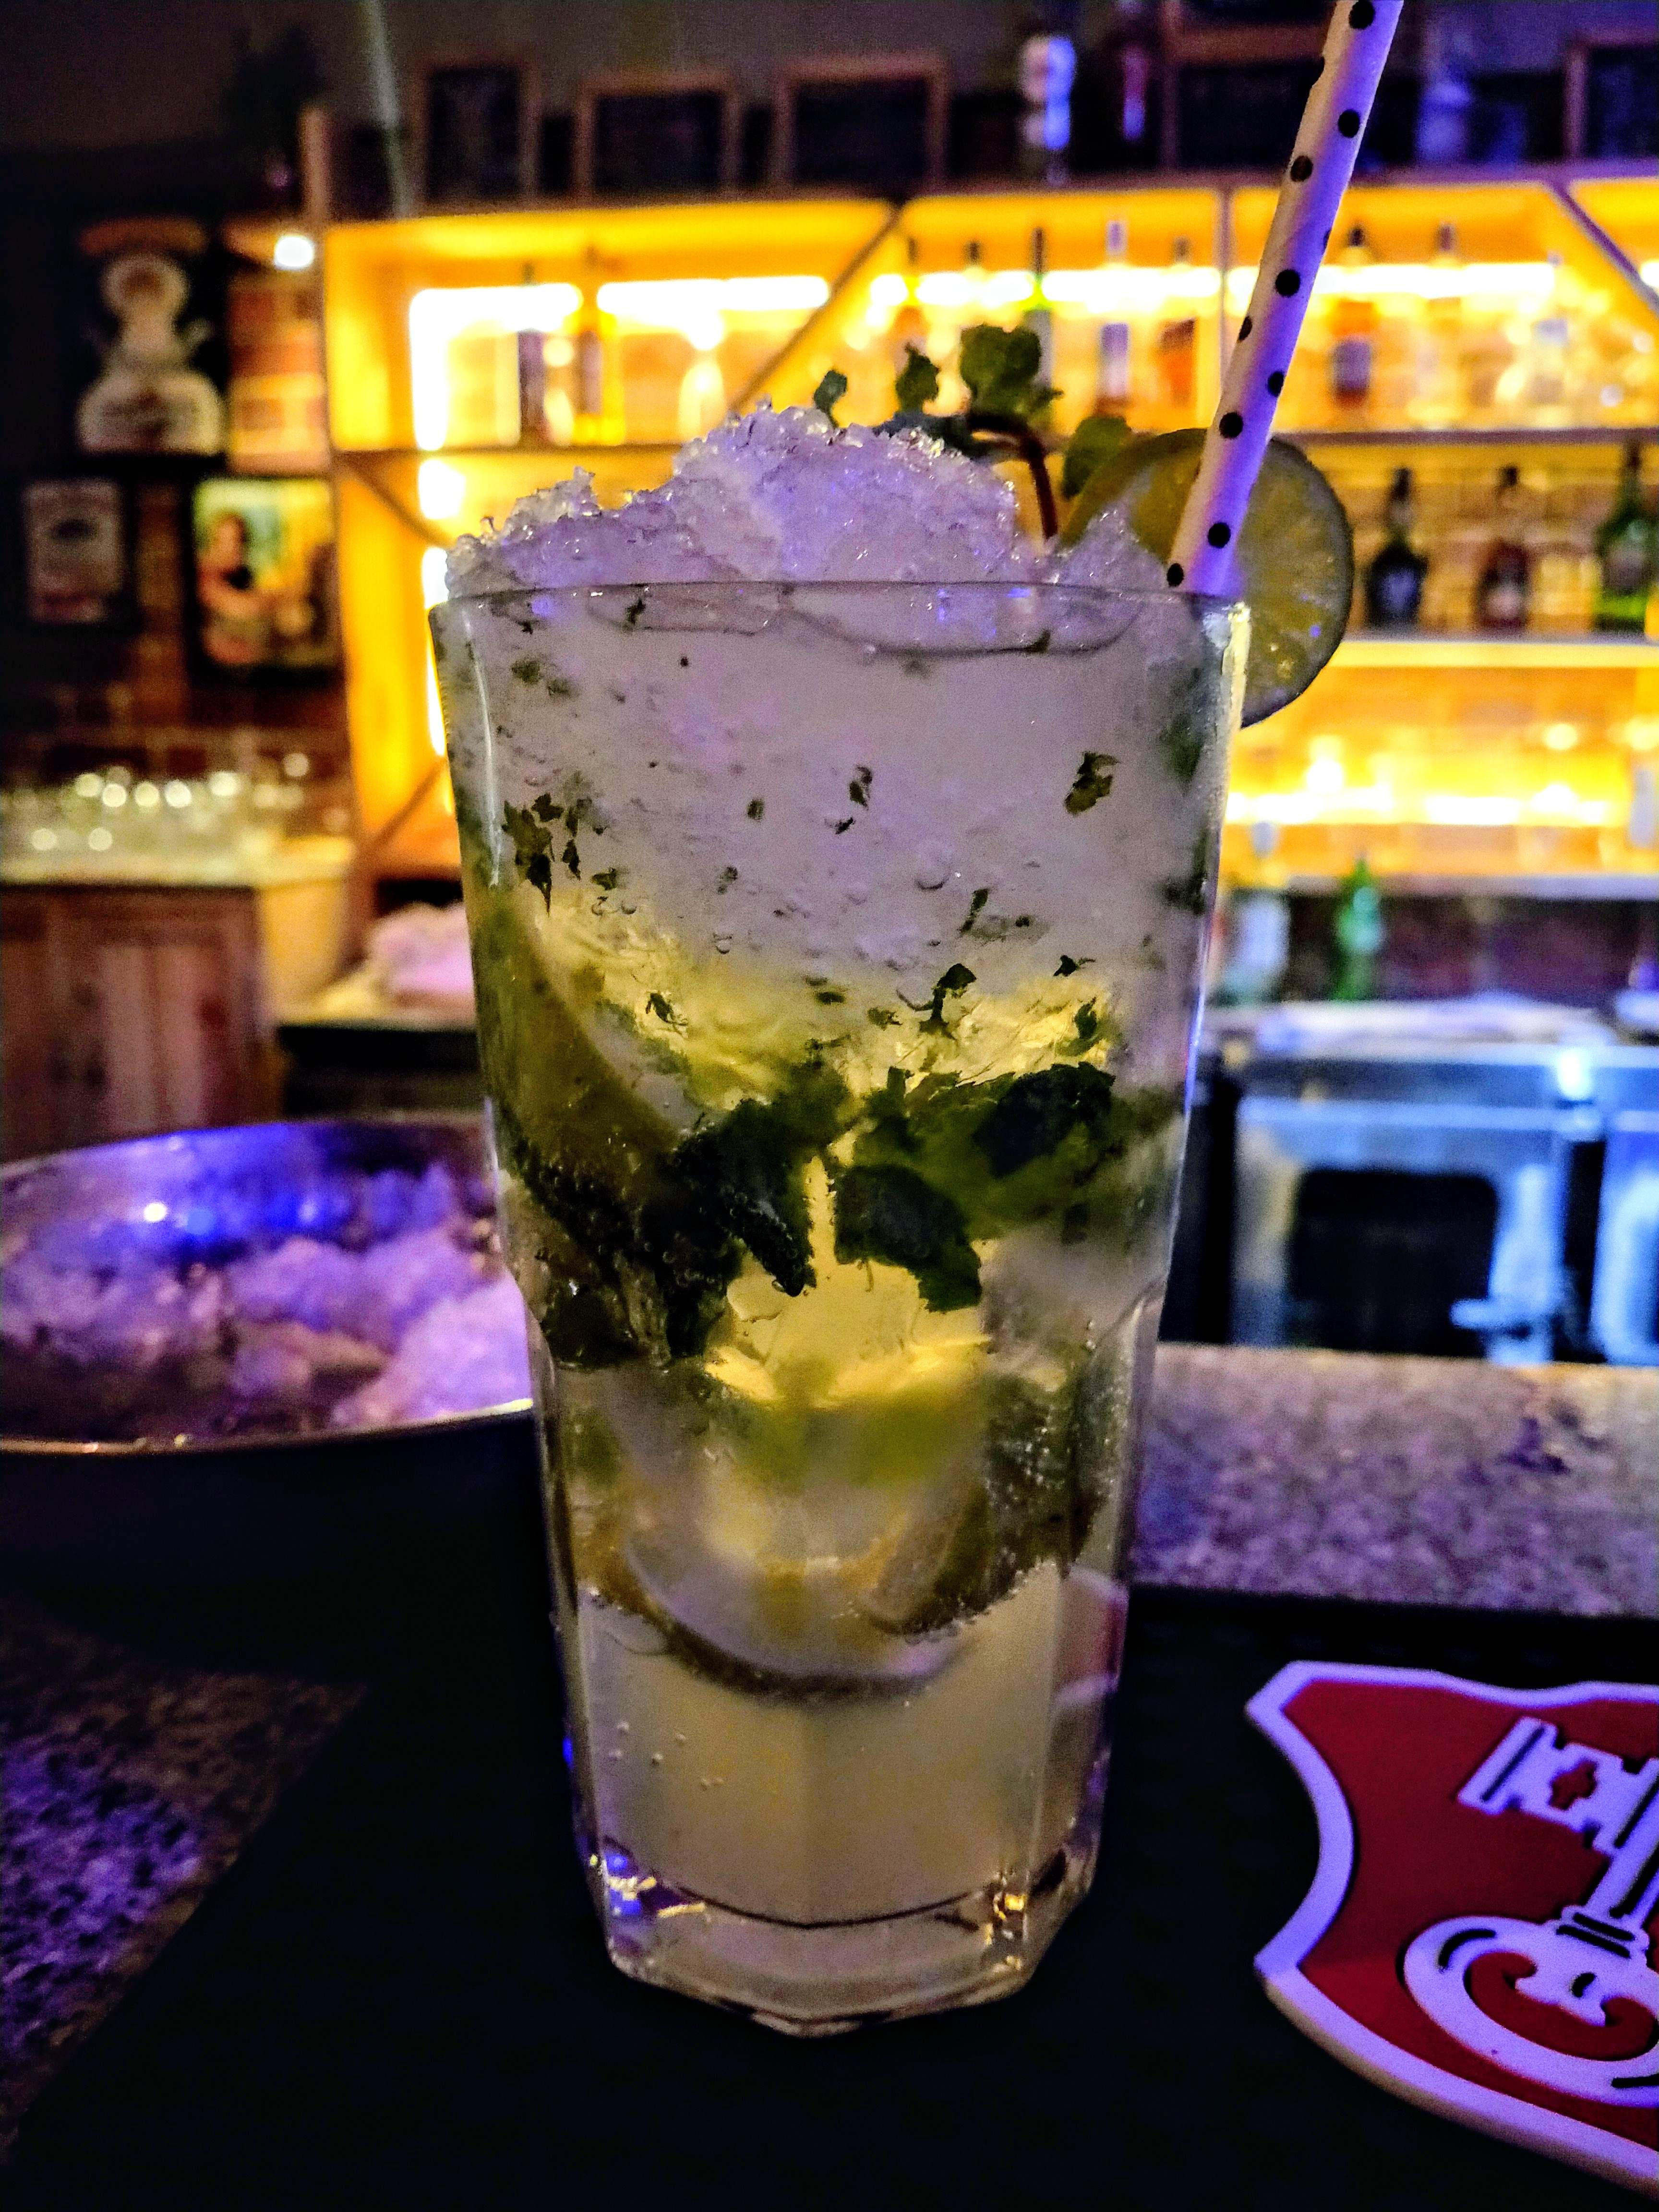 Drink,Alcoholic beverage,Distilled beverage,Liqueur,Cocktail garnish,Non-alcoholic beverage,Cocktail,Mojito,Gin and tonic,Alcohol